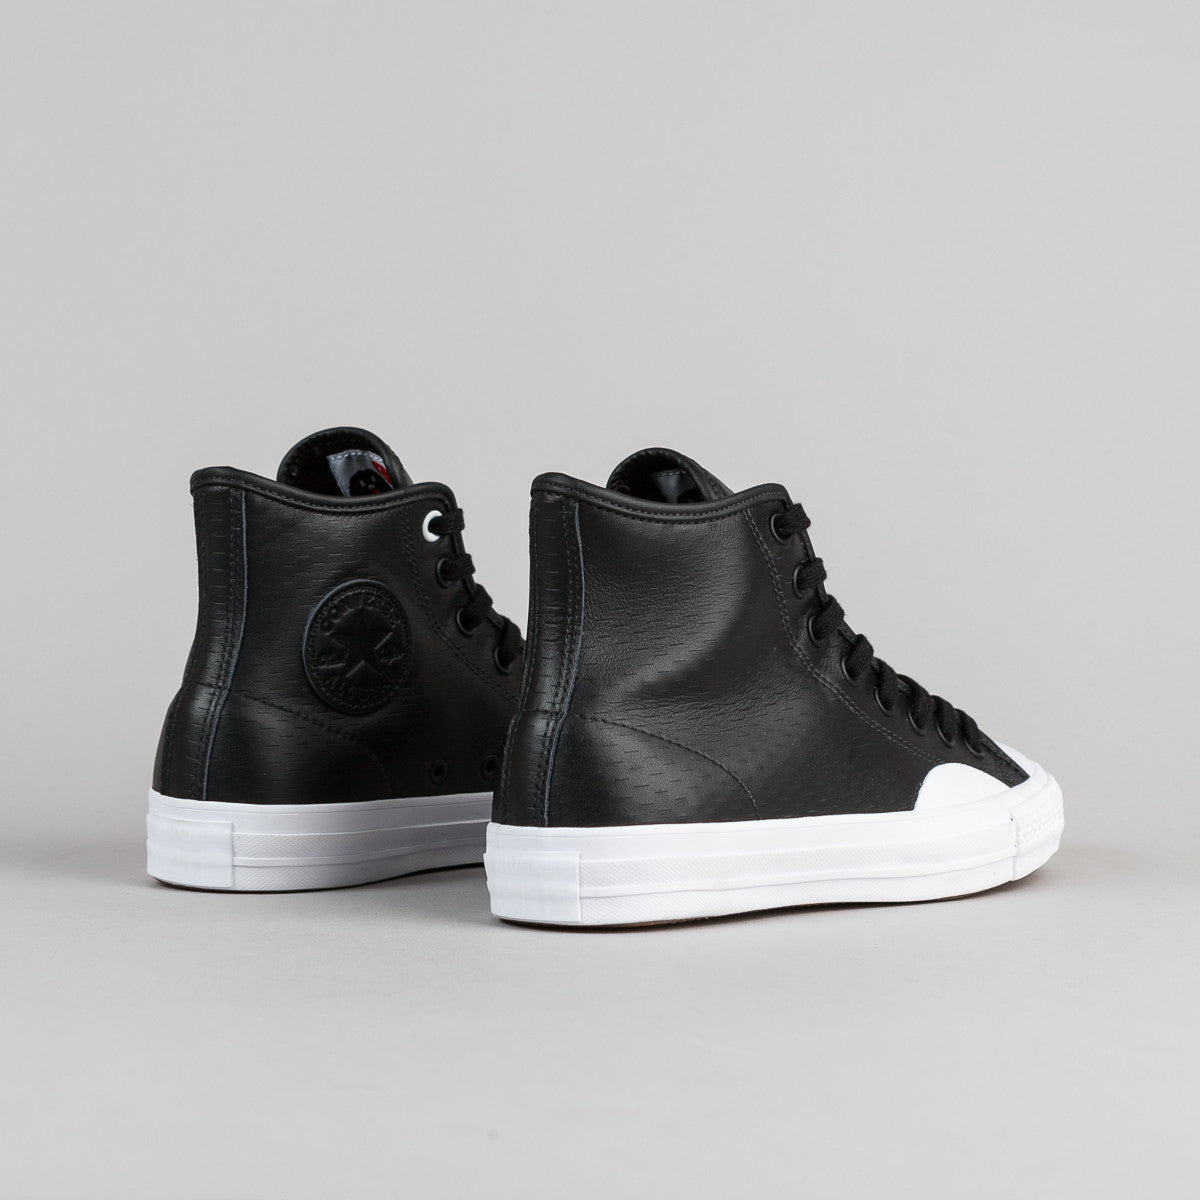 Converse CTAS Pro Hi OP 'Ben G' Shoes - Black